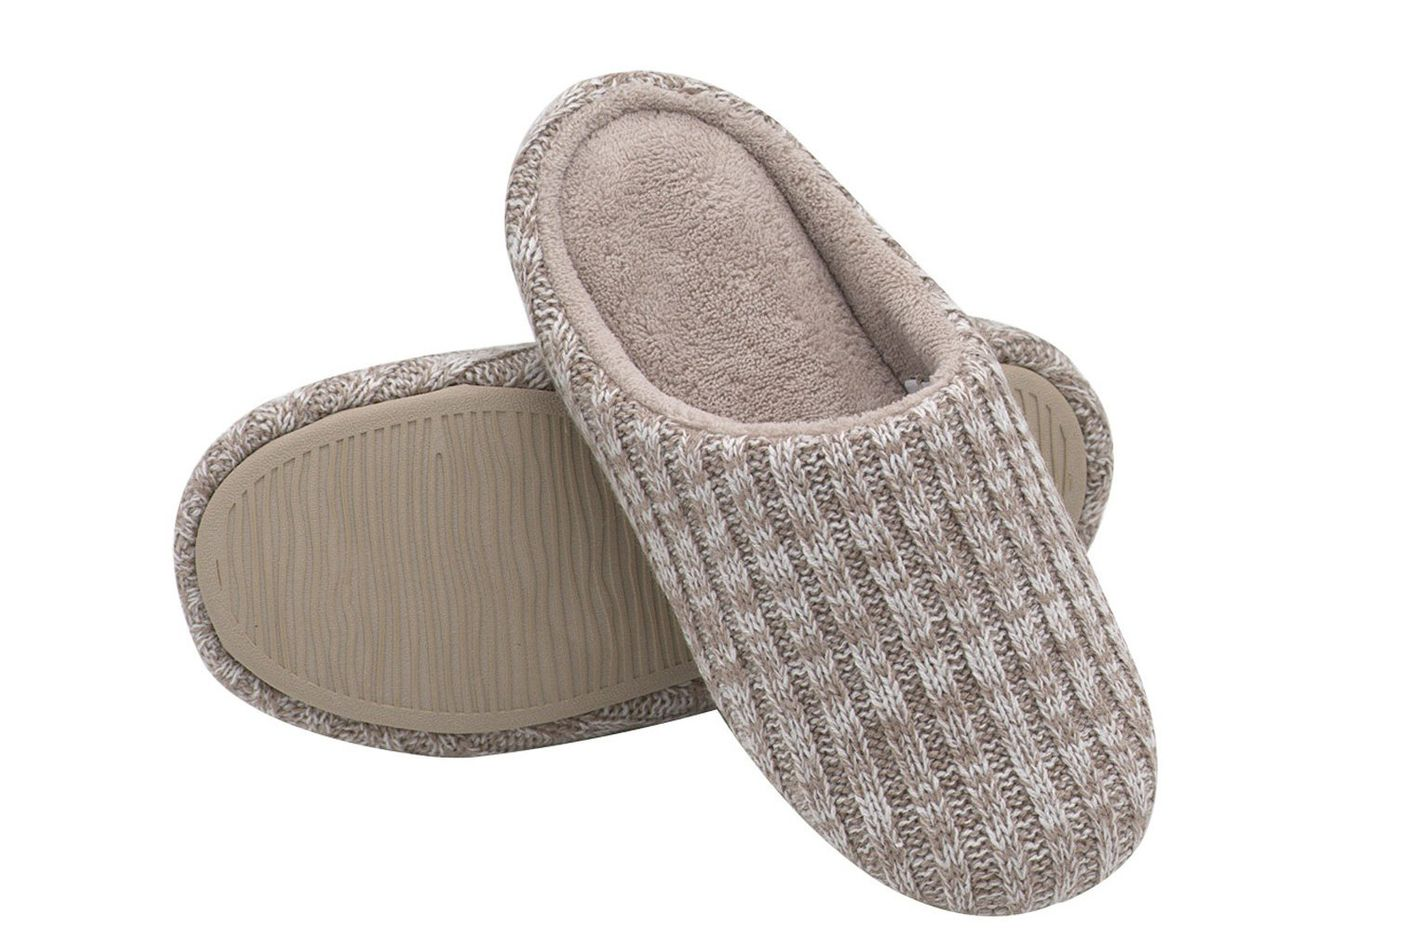 Best Cozy, Comfortable, and Cute House Slippers